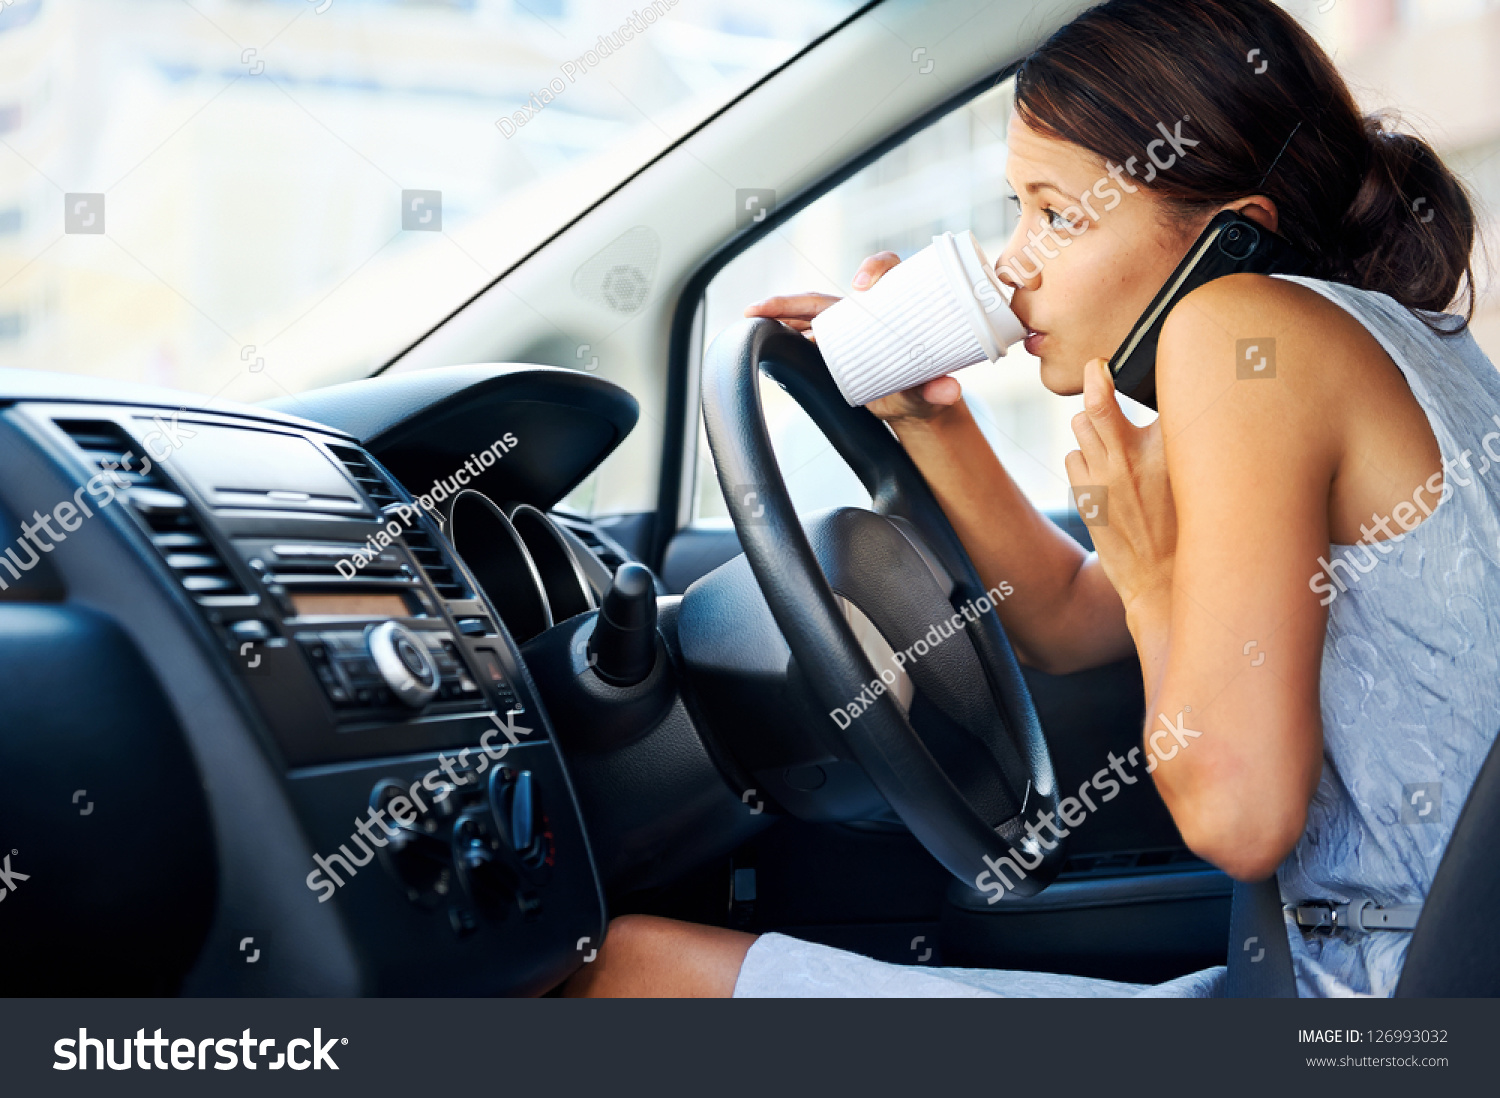 talking on the phone while driving essay Teenagers are the main texters with around 50% of them admitting to habitually texting while driving parents talk on a cell phone while driving essays.